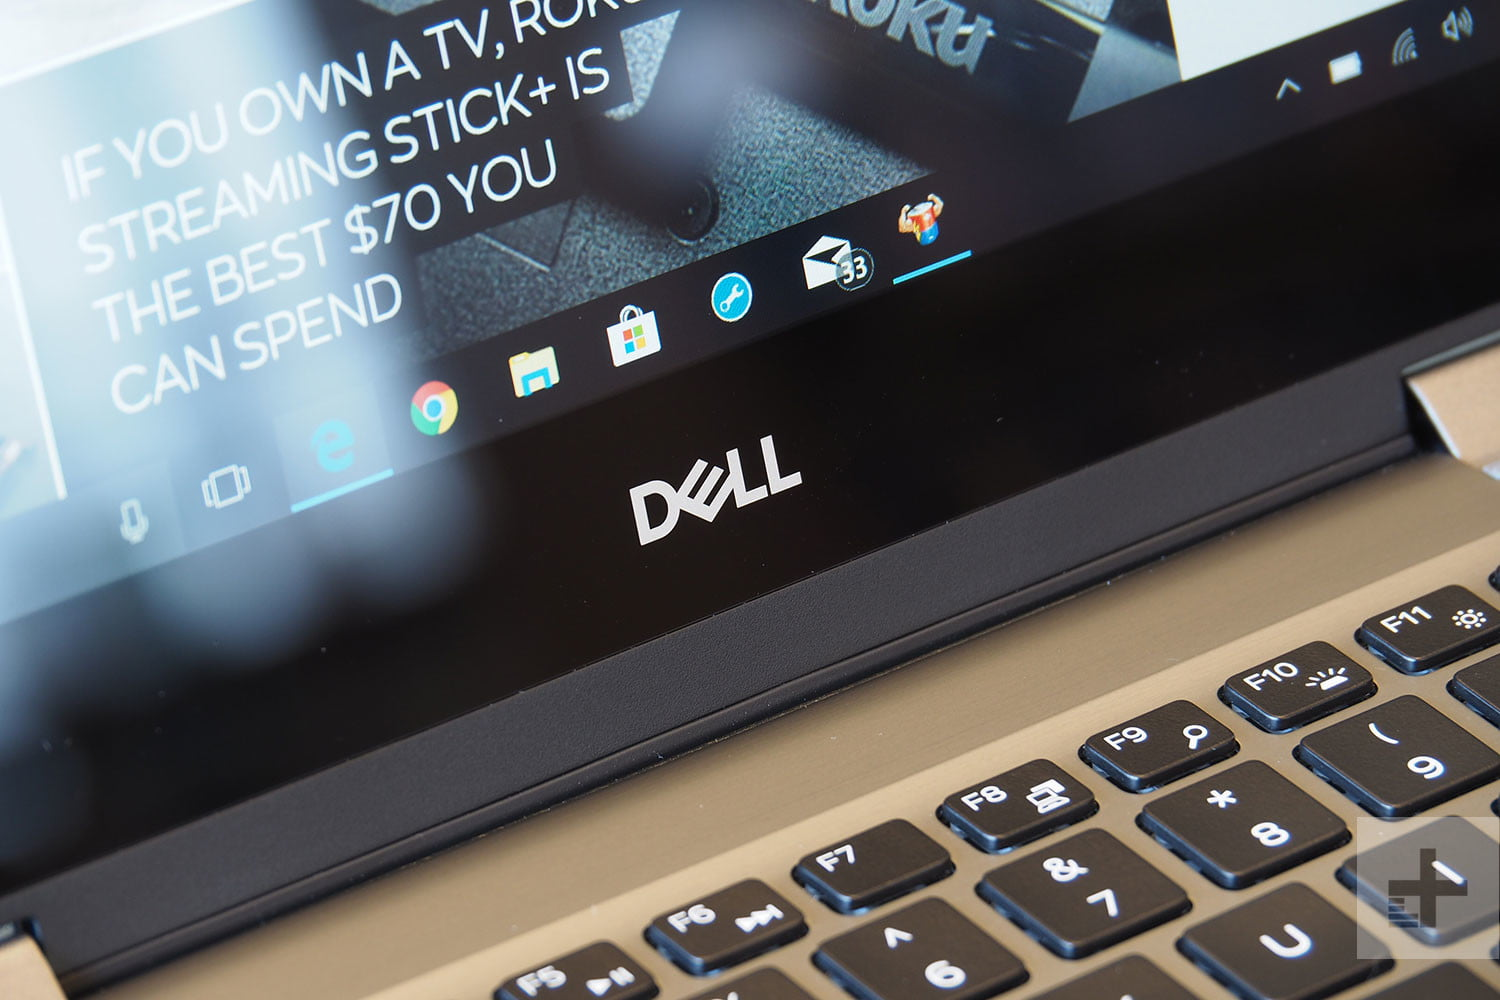 Dell Inspiron 13 7000 2-in-1 (2017) Review | Digital Trends